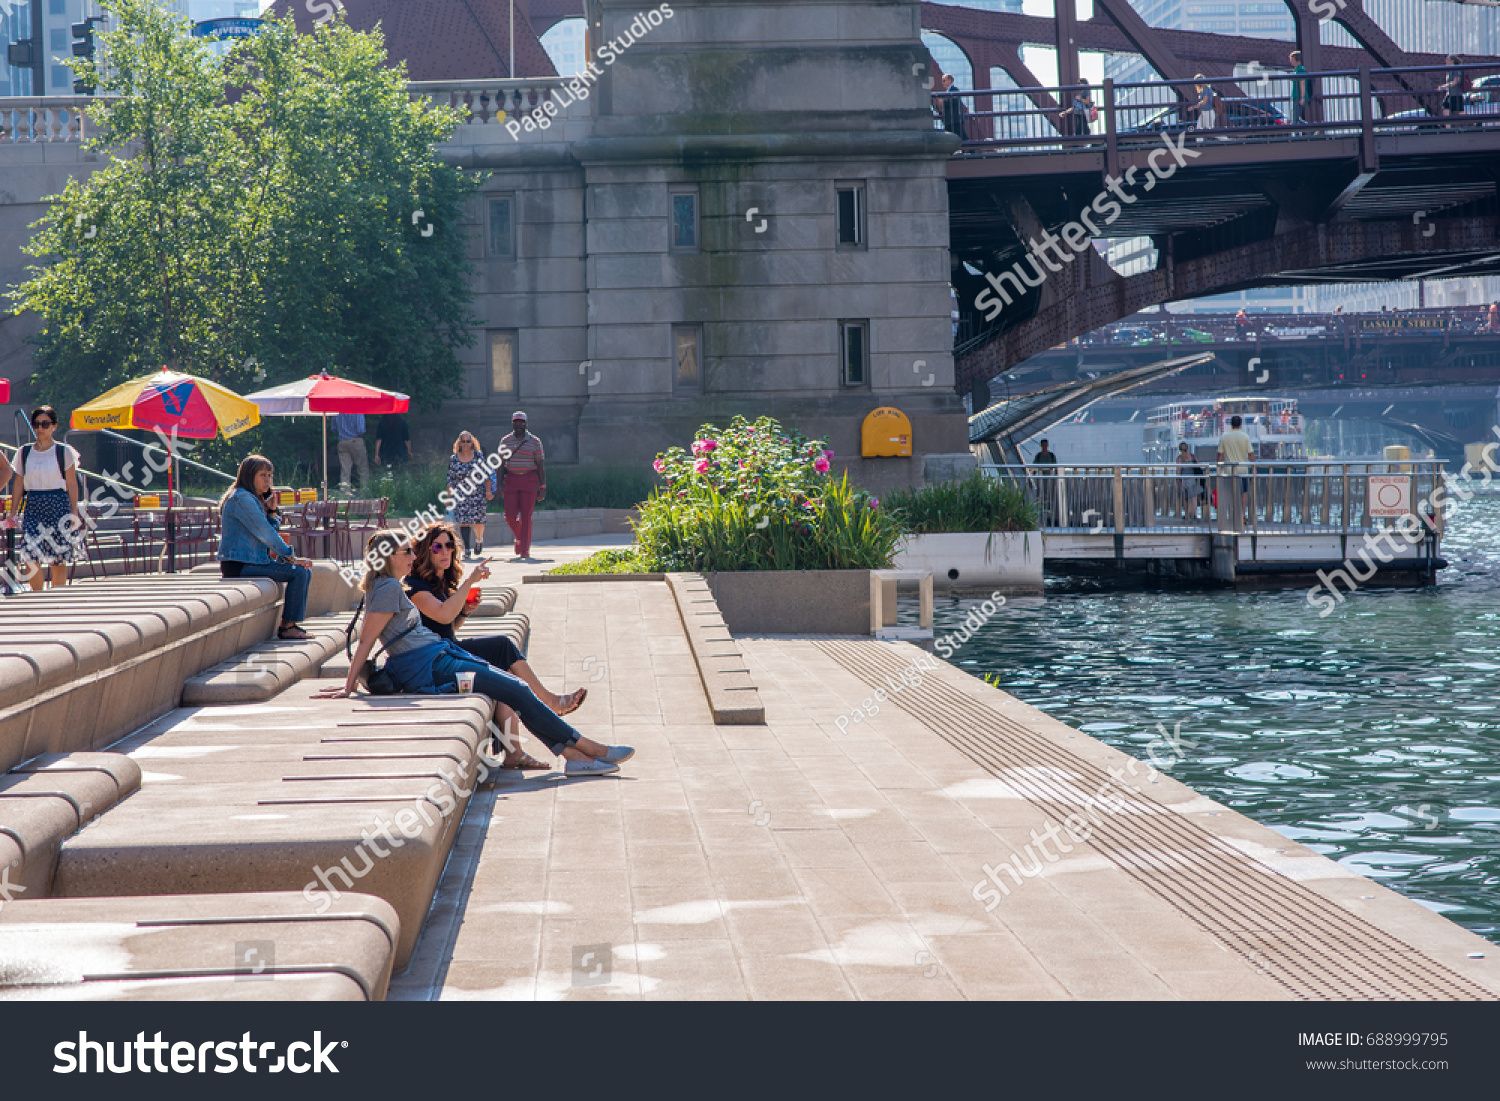 Chicago, IL, August 1, 2017: Friends Relax For Happy Hour At One